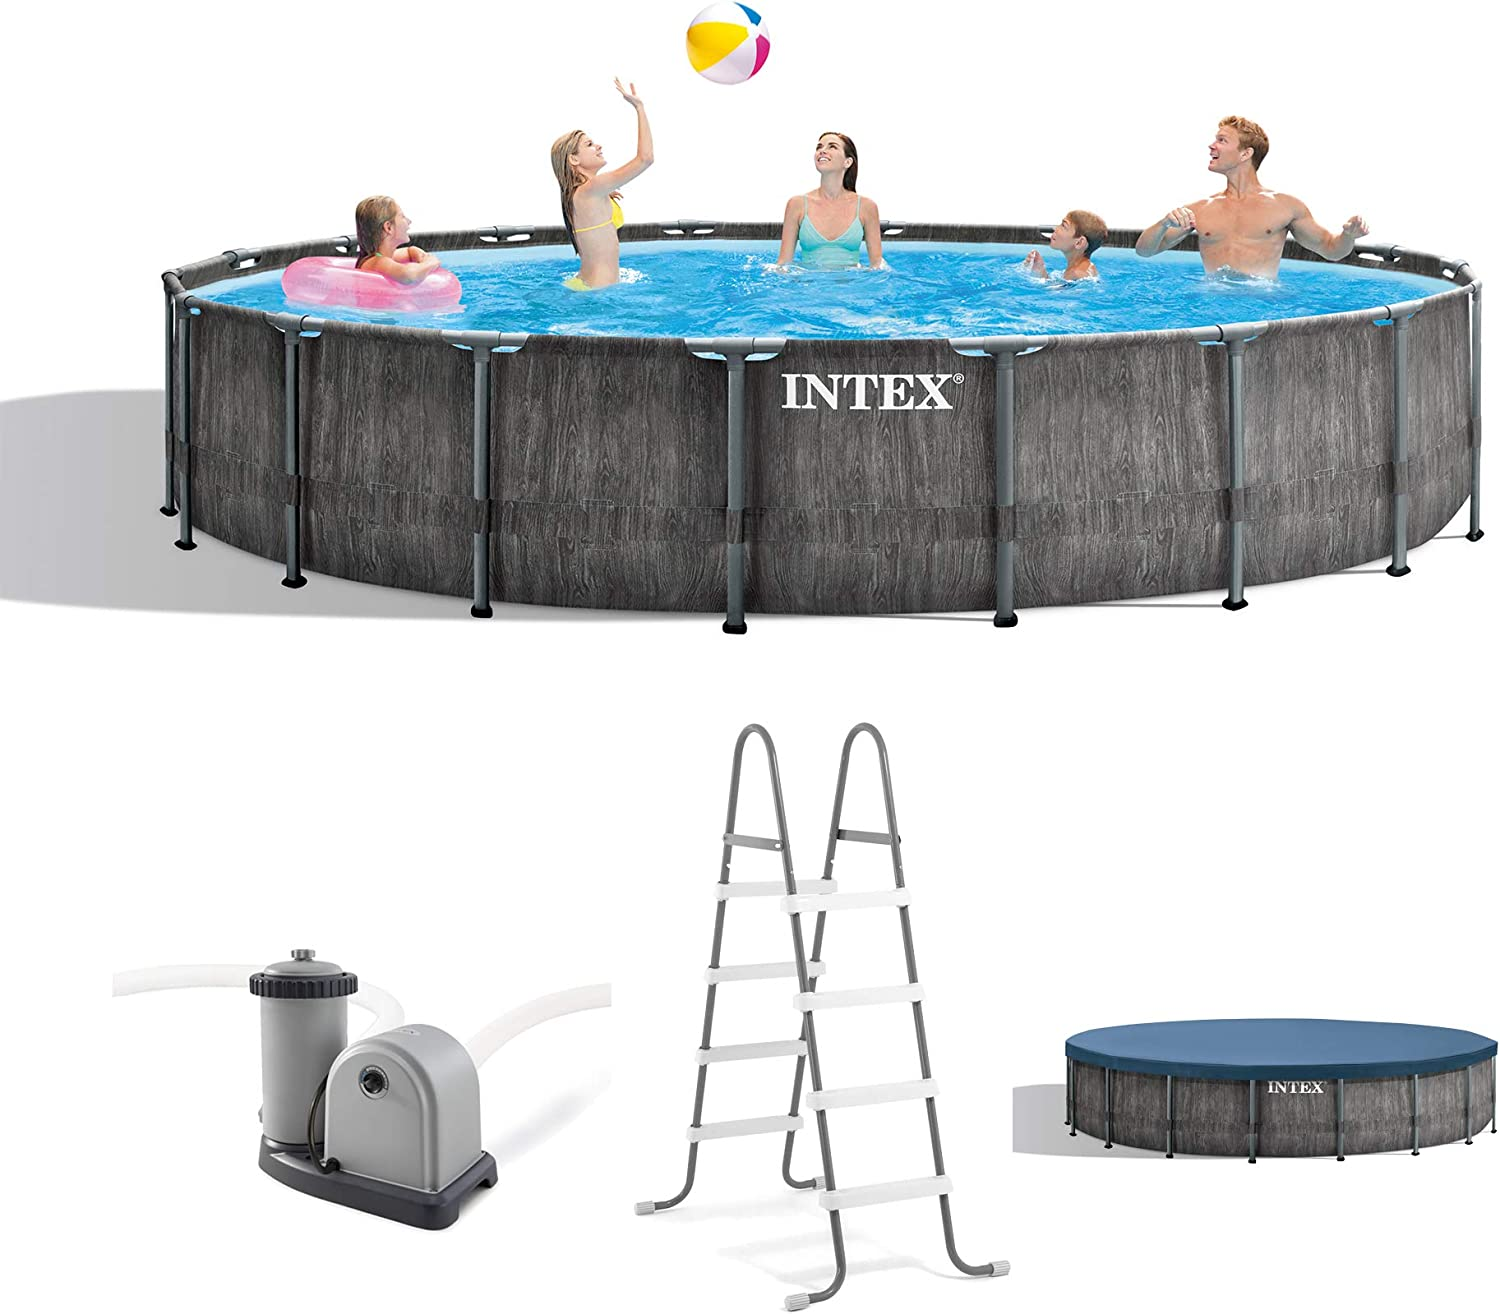 Intex 26743EH 18ft x 48in Greywood Premium Prism Steel Frame Outdoor Above Ground Swimming Pool